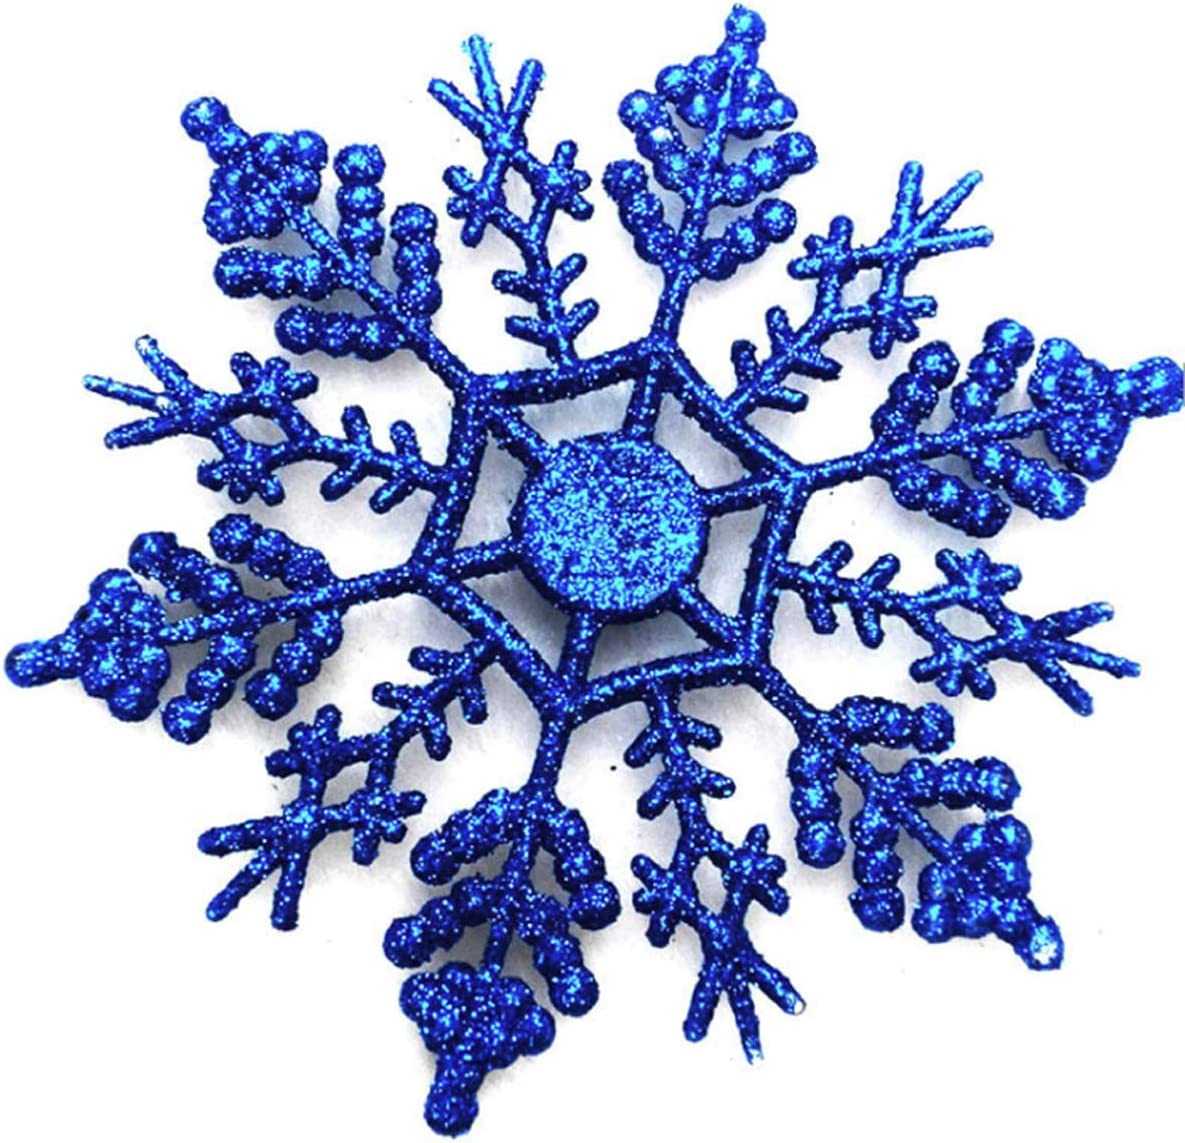 24 Pcs Large Snowflakes Acrylic Sparkling Glitter Snowflake Ornaments for Christmas Tree Home Wedding Party Window Party Decor Winter Decoration,Blue